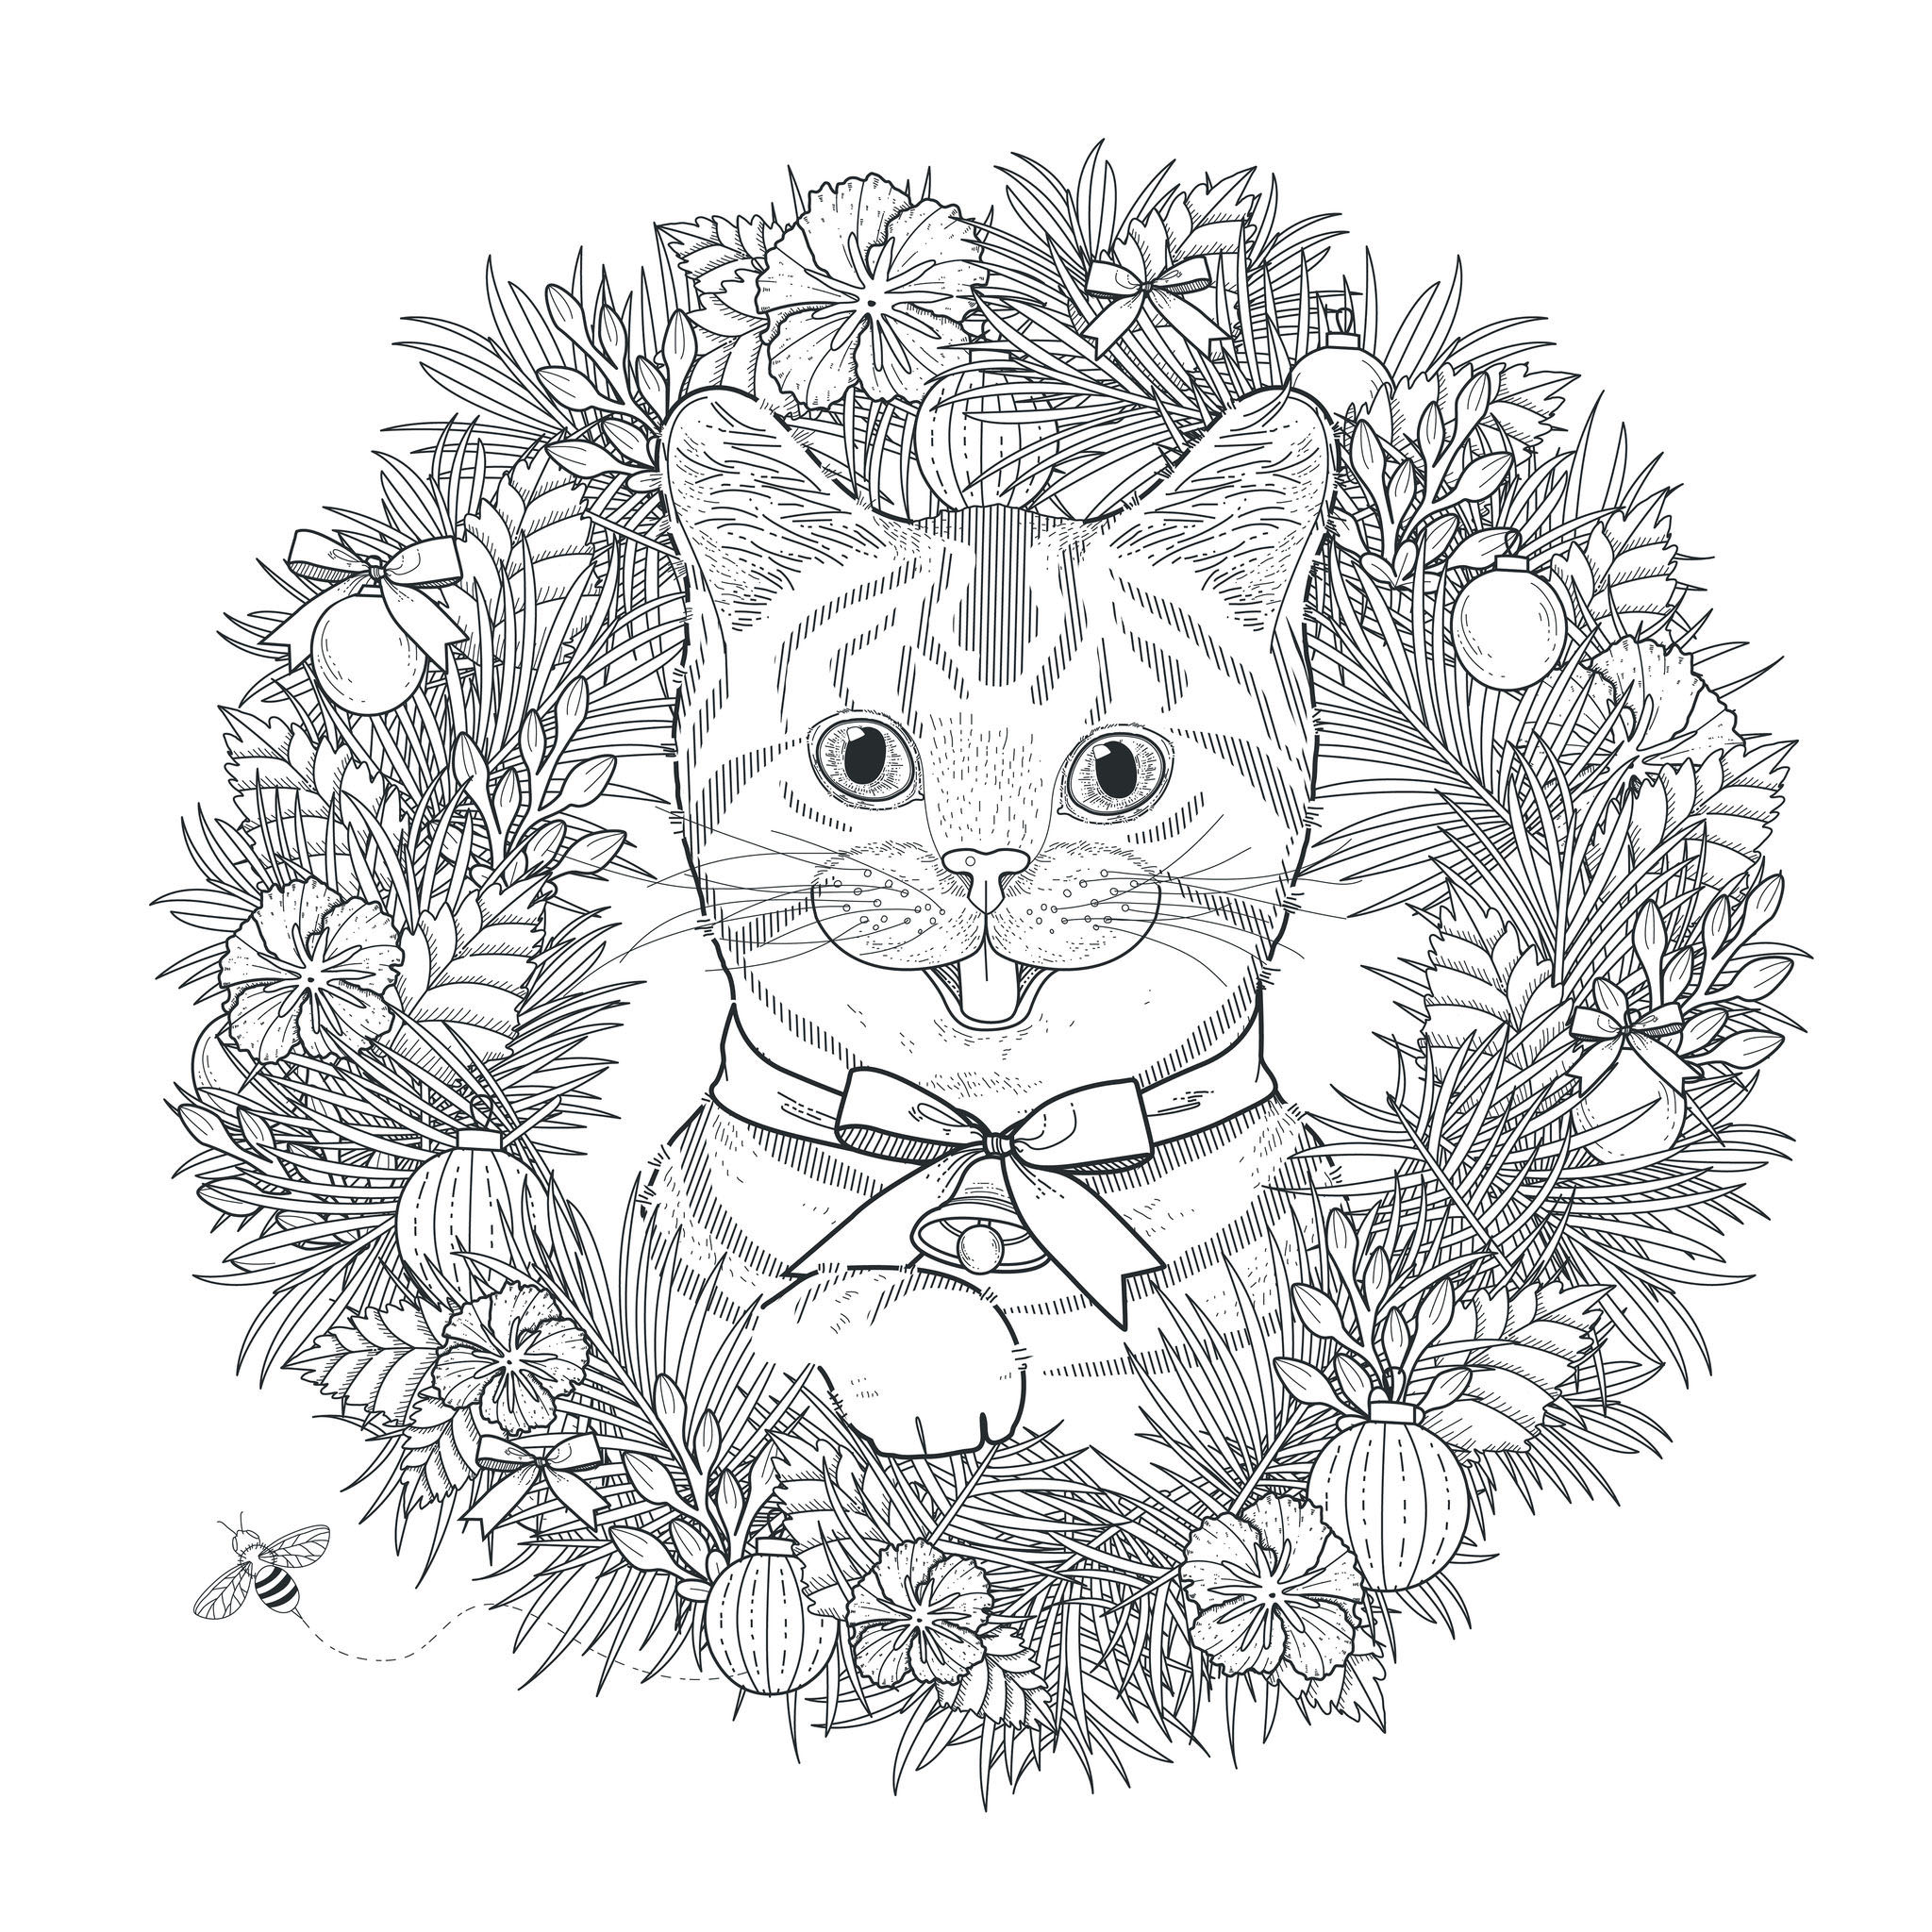 Hard mandala coloring pages for adults - Mandala To Download Cat In Vegetal Crown Free To Print